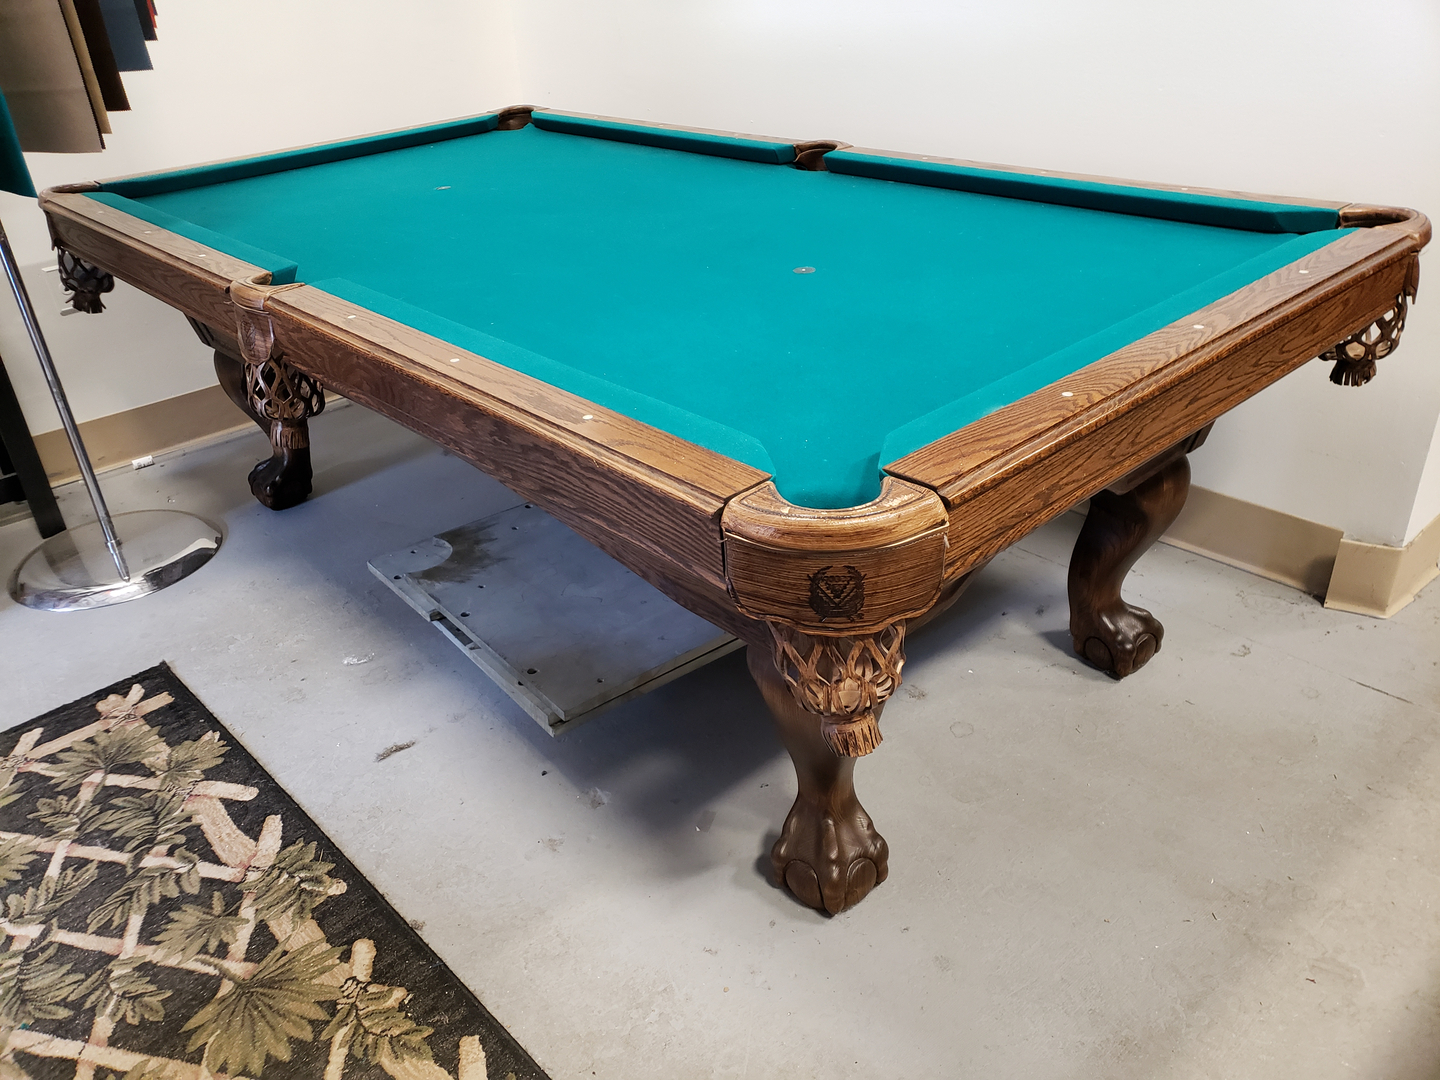 Refurbished Tables - 8ft kasson pool table